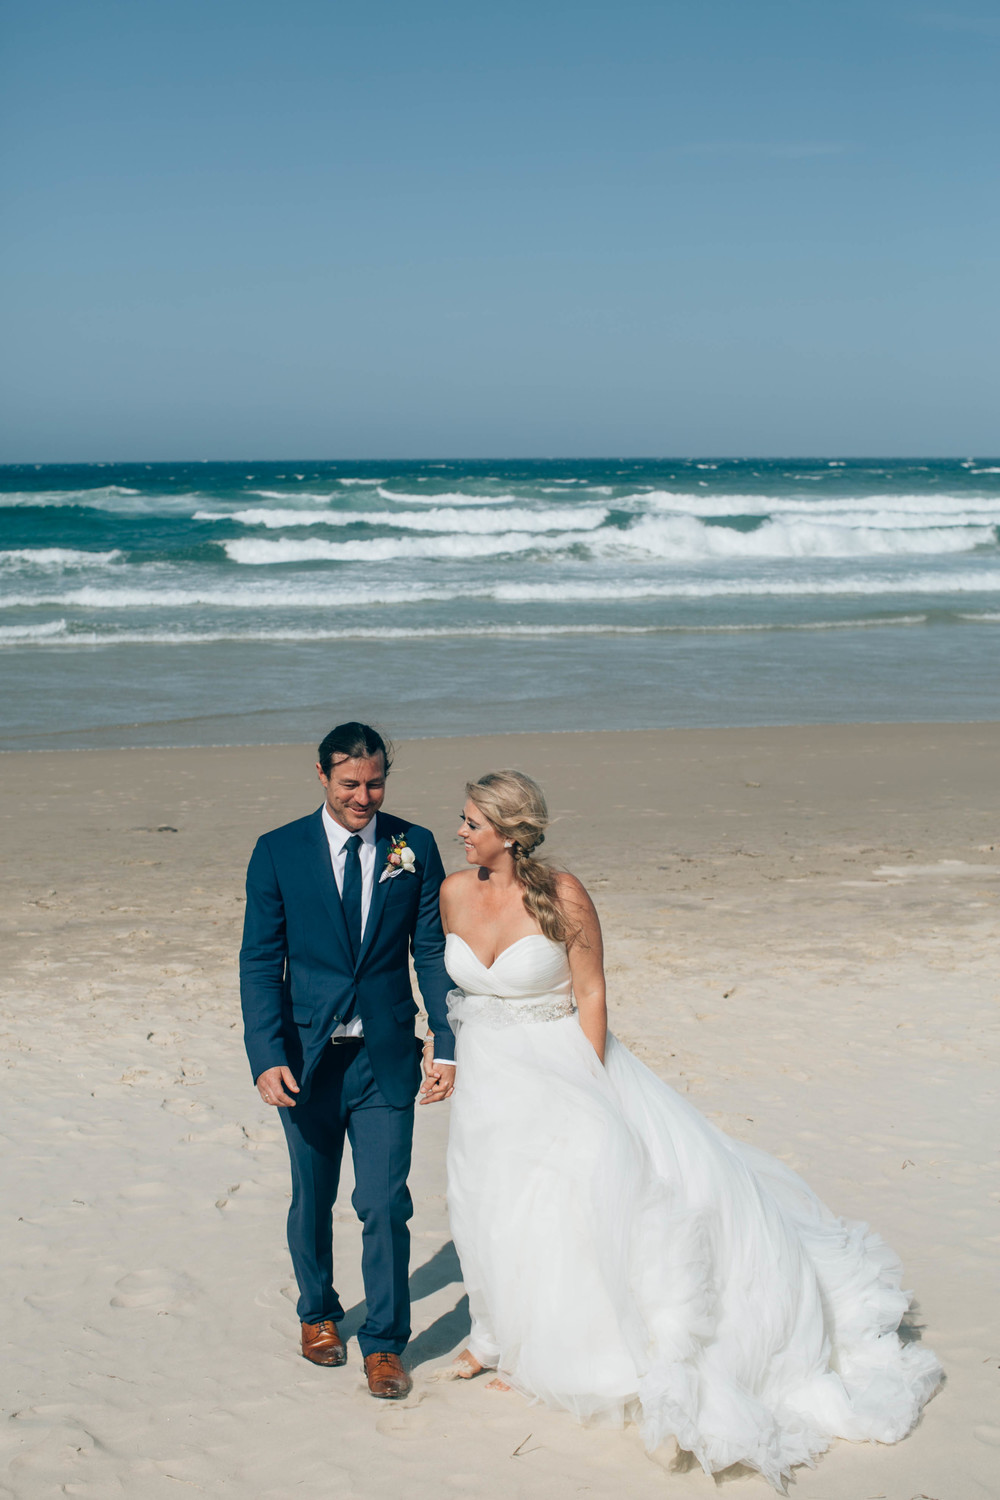 E&C Byron Bay Wedding Photography-87.jpg